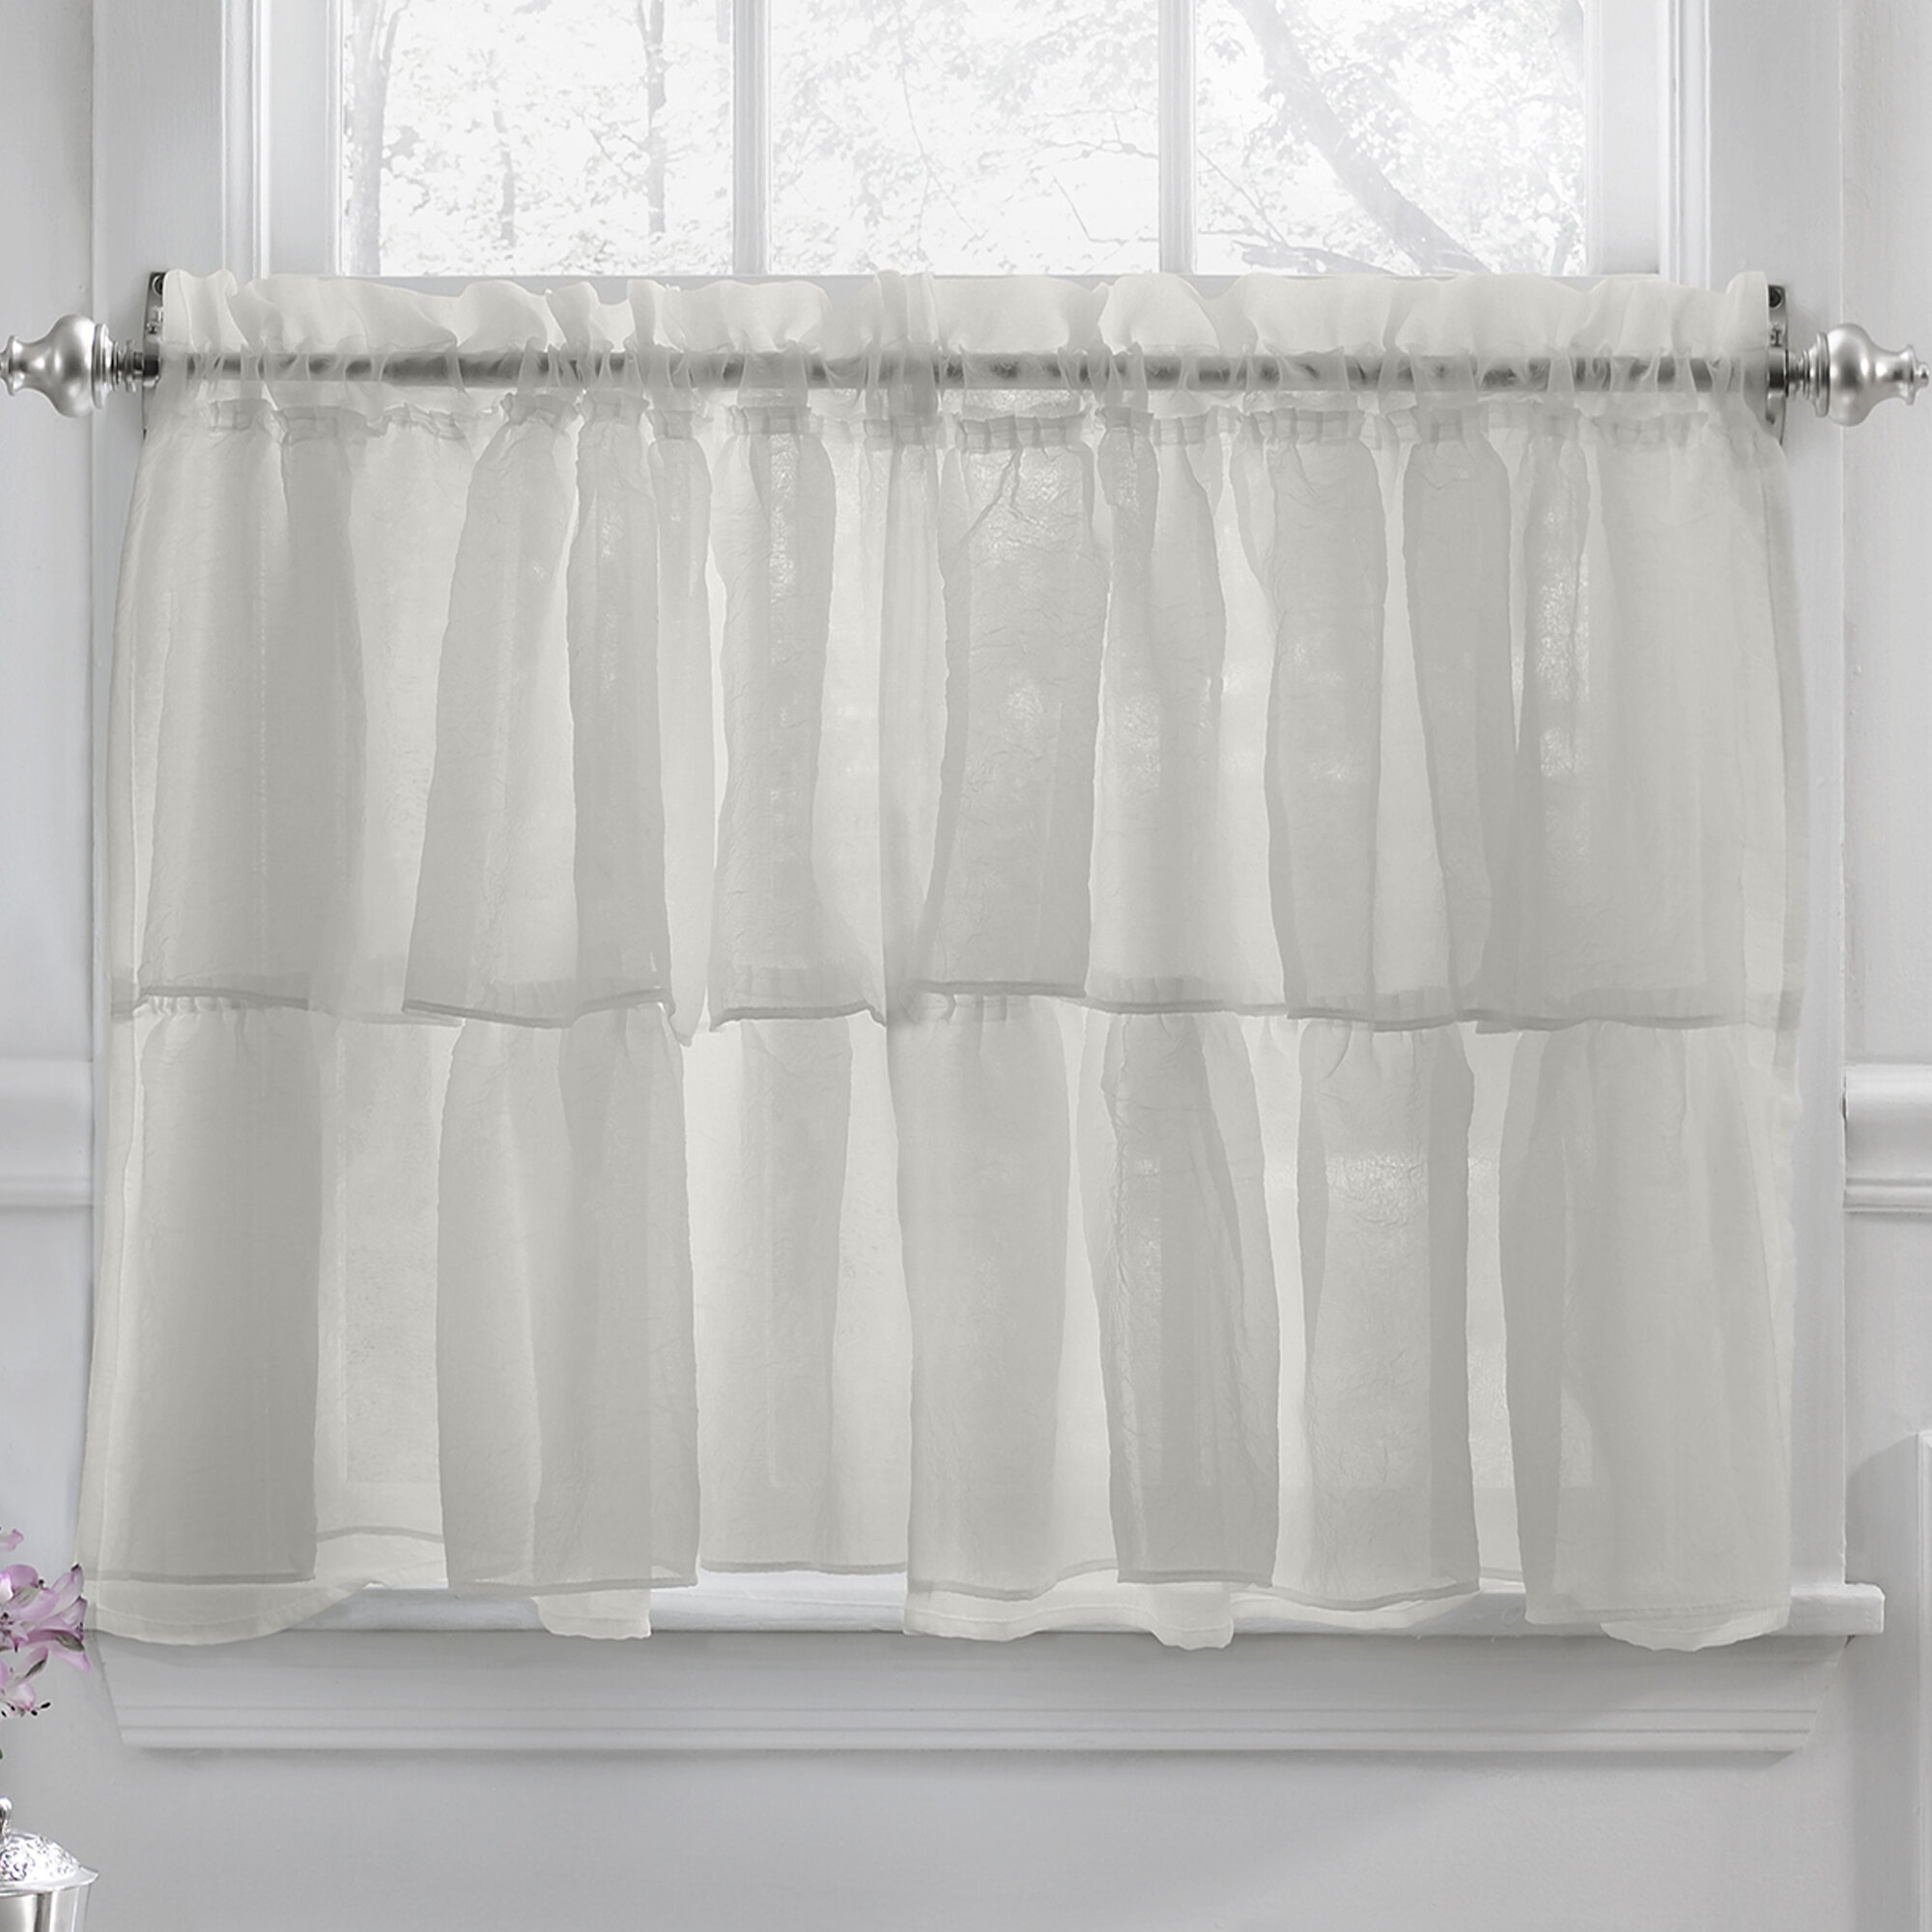 linen click curtains cream line pure zoom roll kensington over net from panel voile image to expand direct